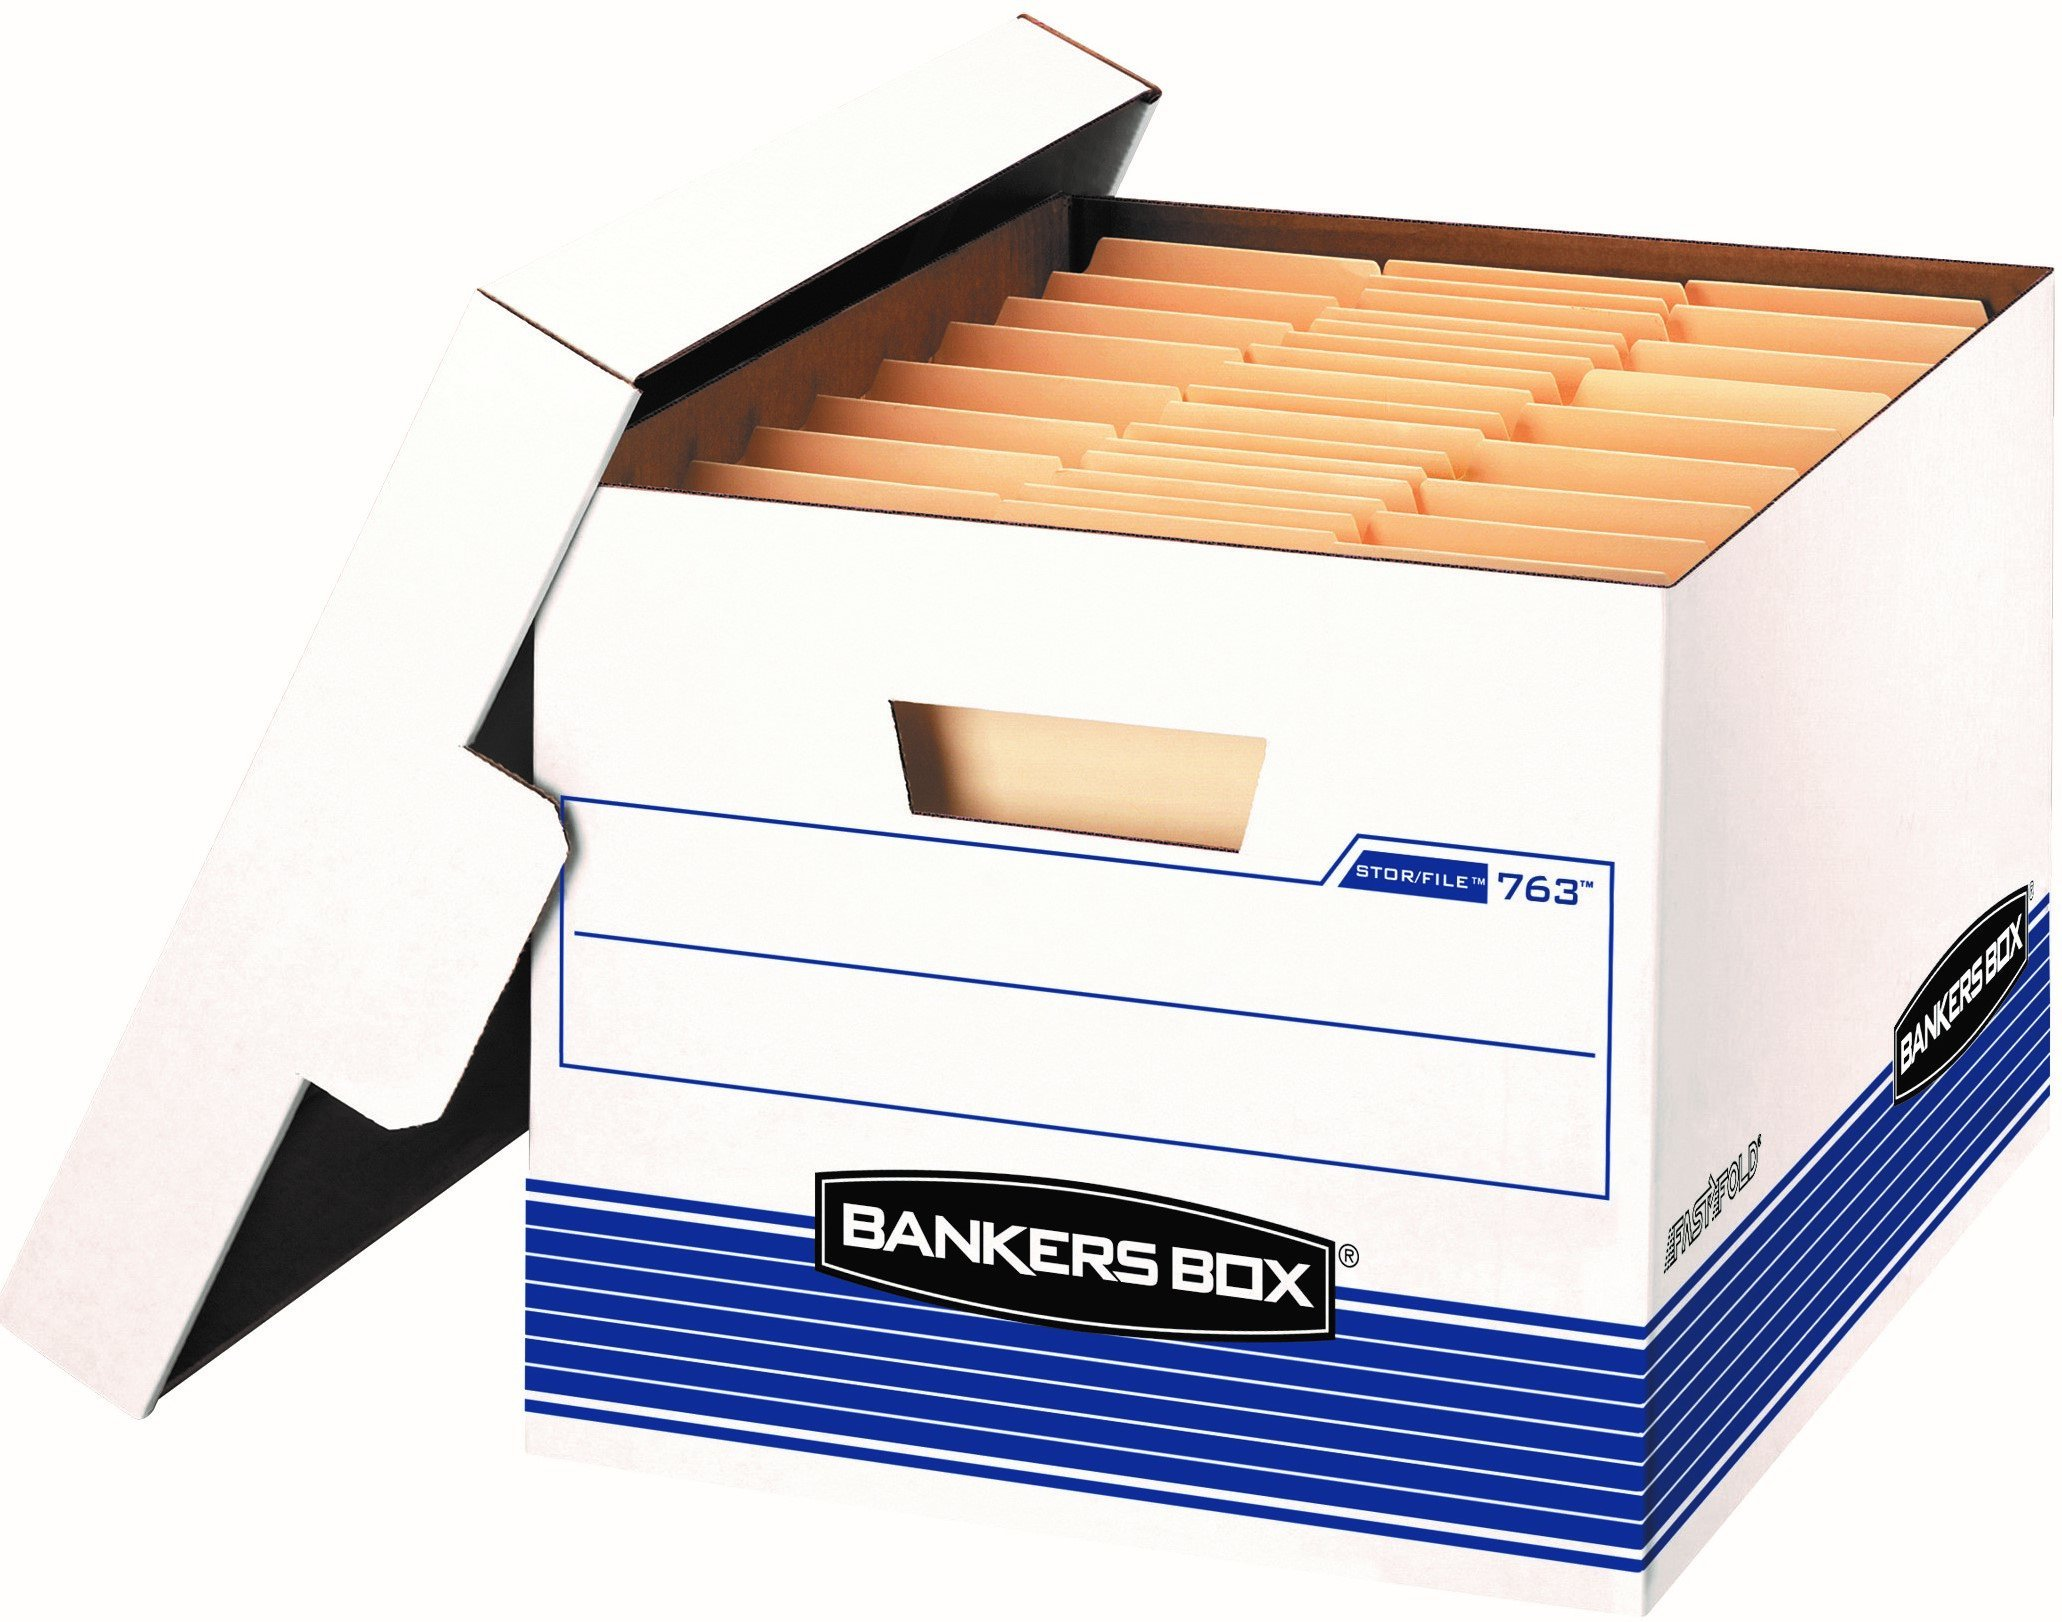 Bankers Box STOR/File Medium-Duty Storage Boxes, FastFold, Lift-Off Lid, Letter/Legal, Value Pack of 20 (0076315) by Bankers Box